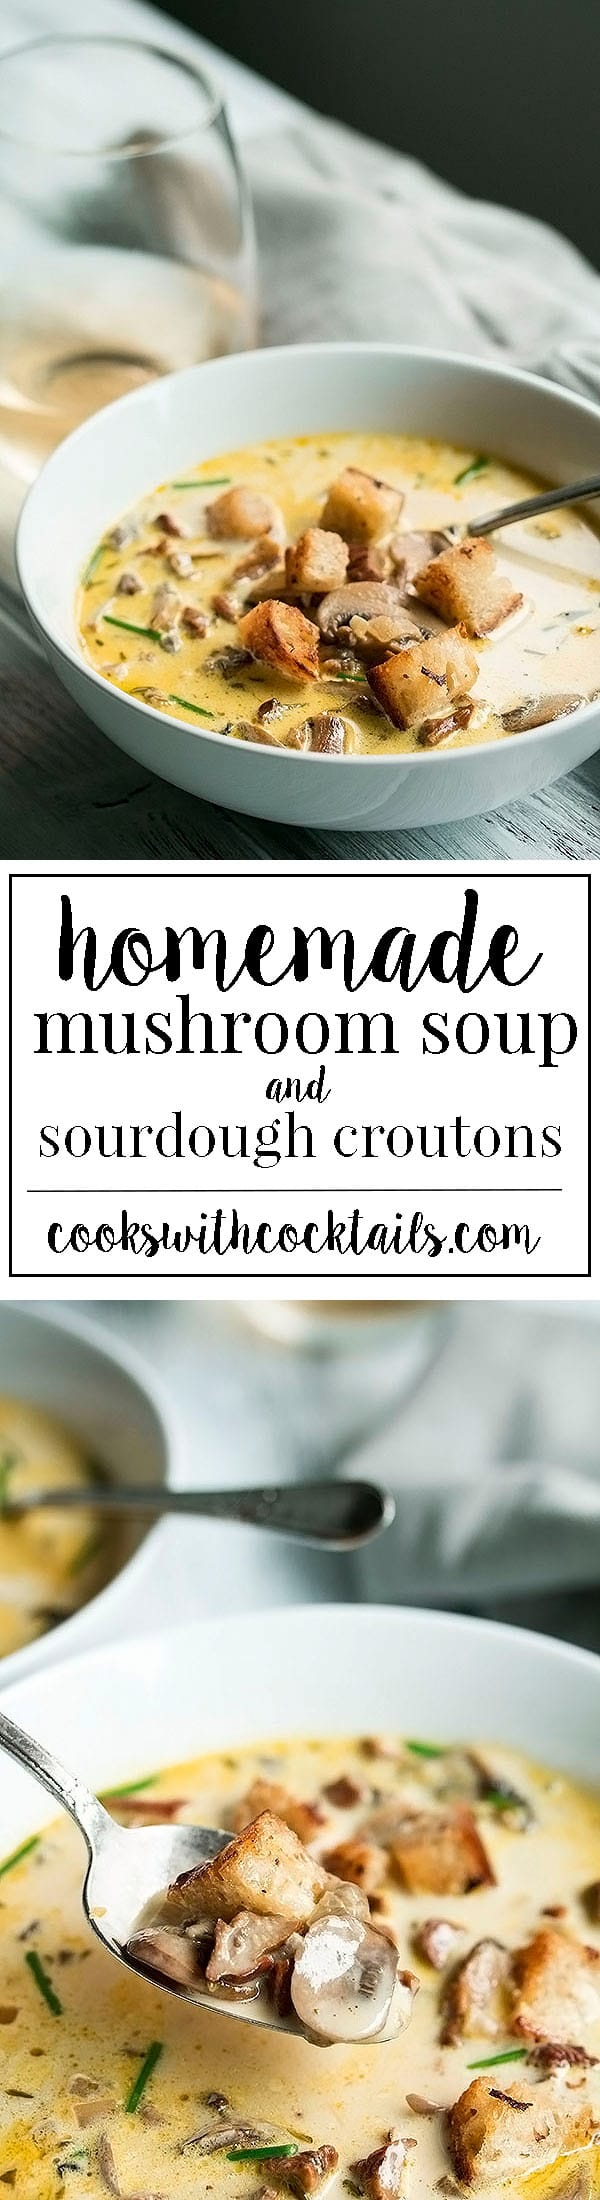 Homemade Mushroom Soup with Truffled Sourdough Croutons